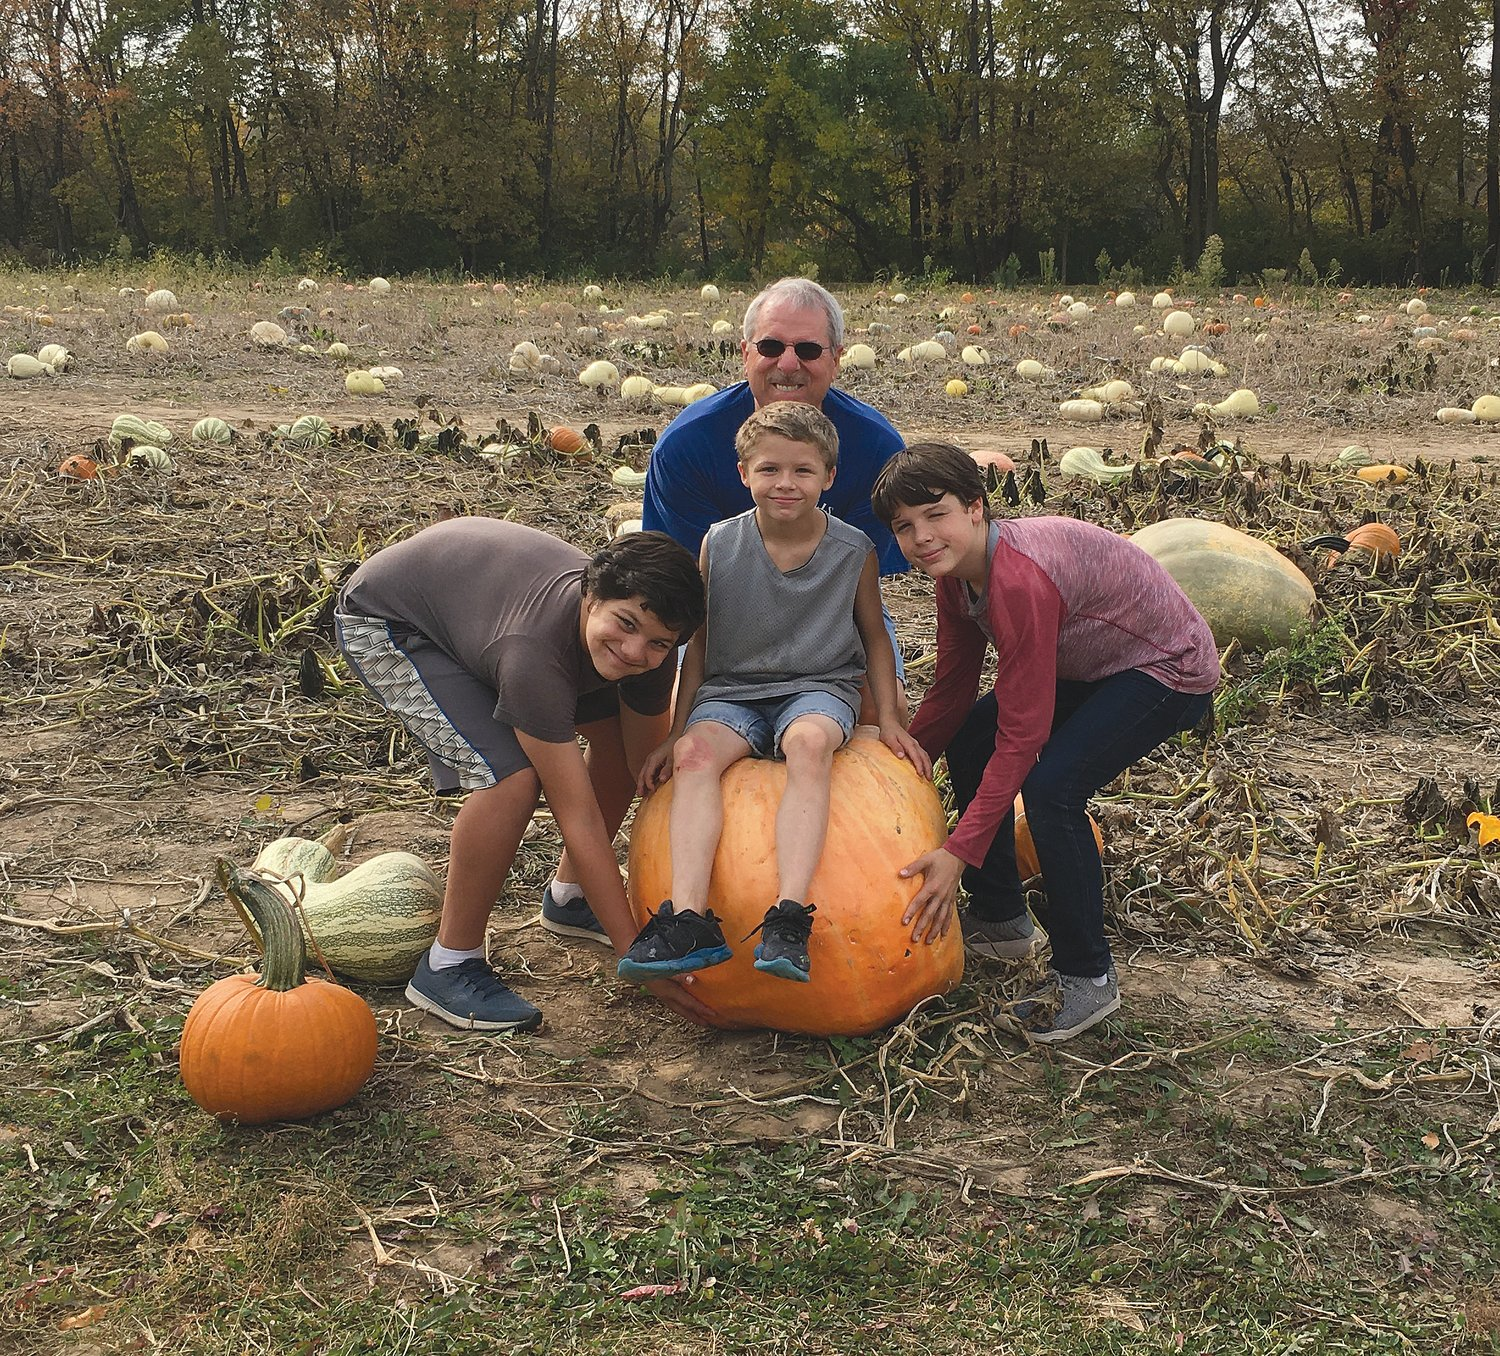 Steve Akers, Draco and brothers try to lift a pumpkin.